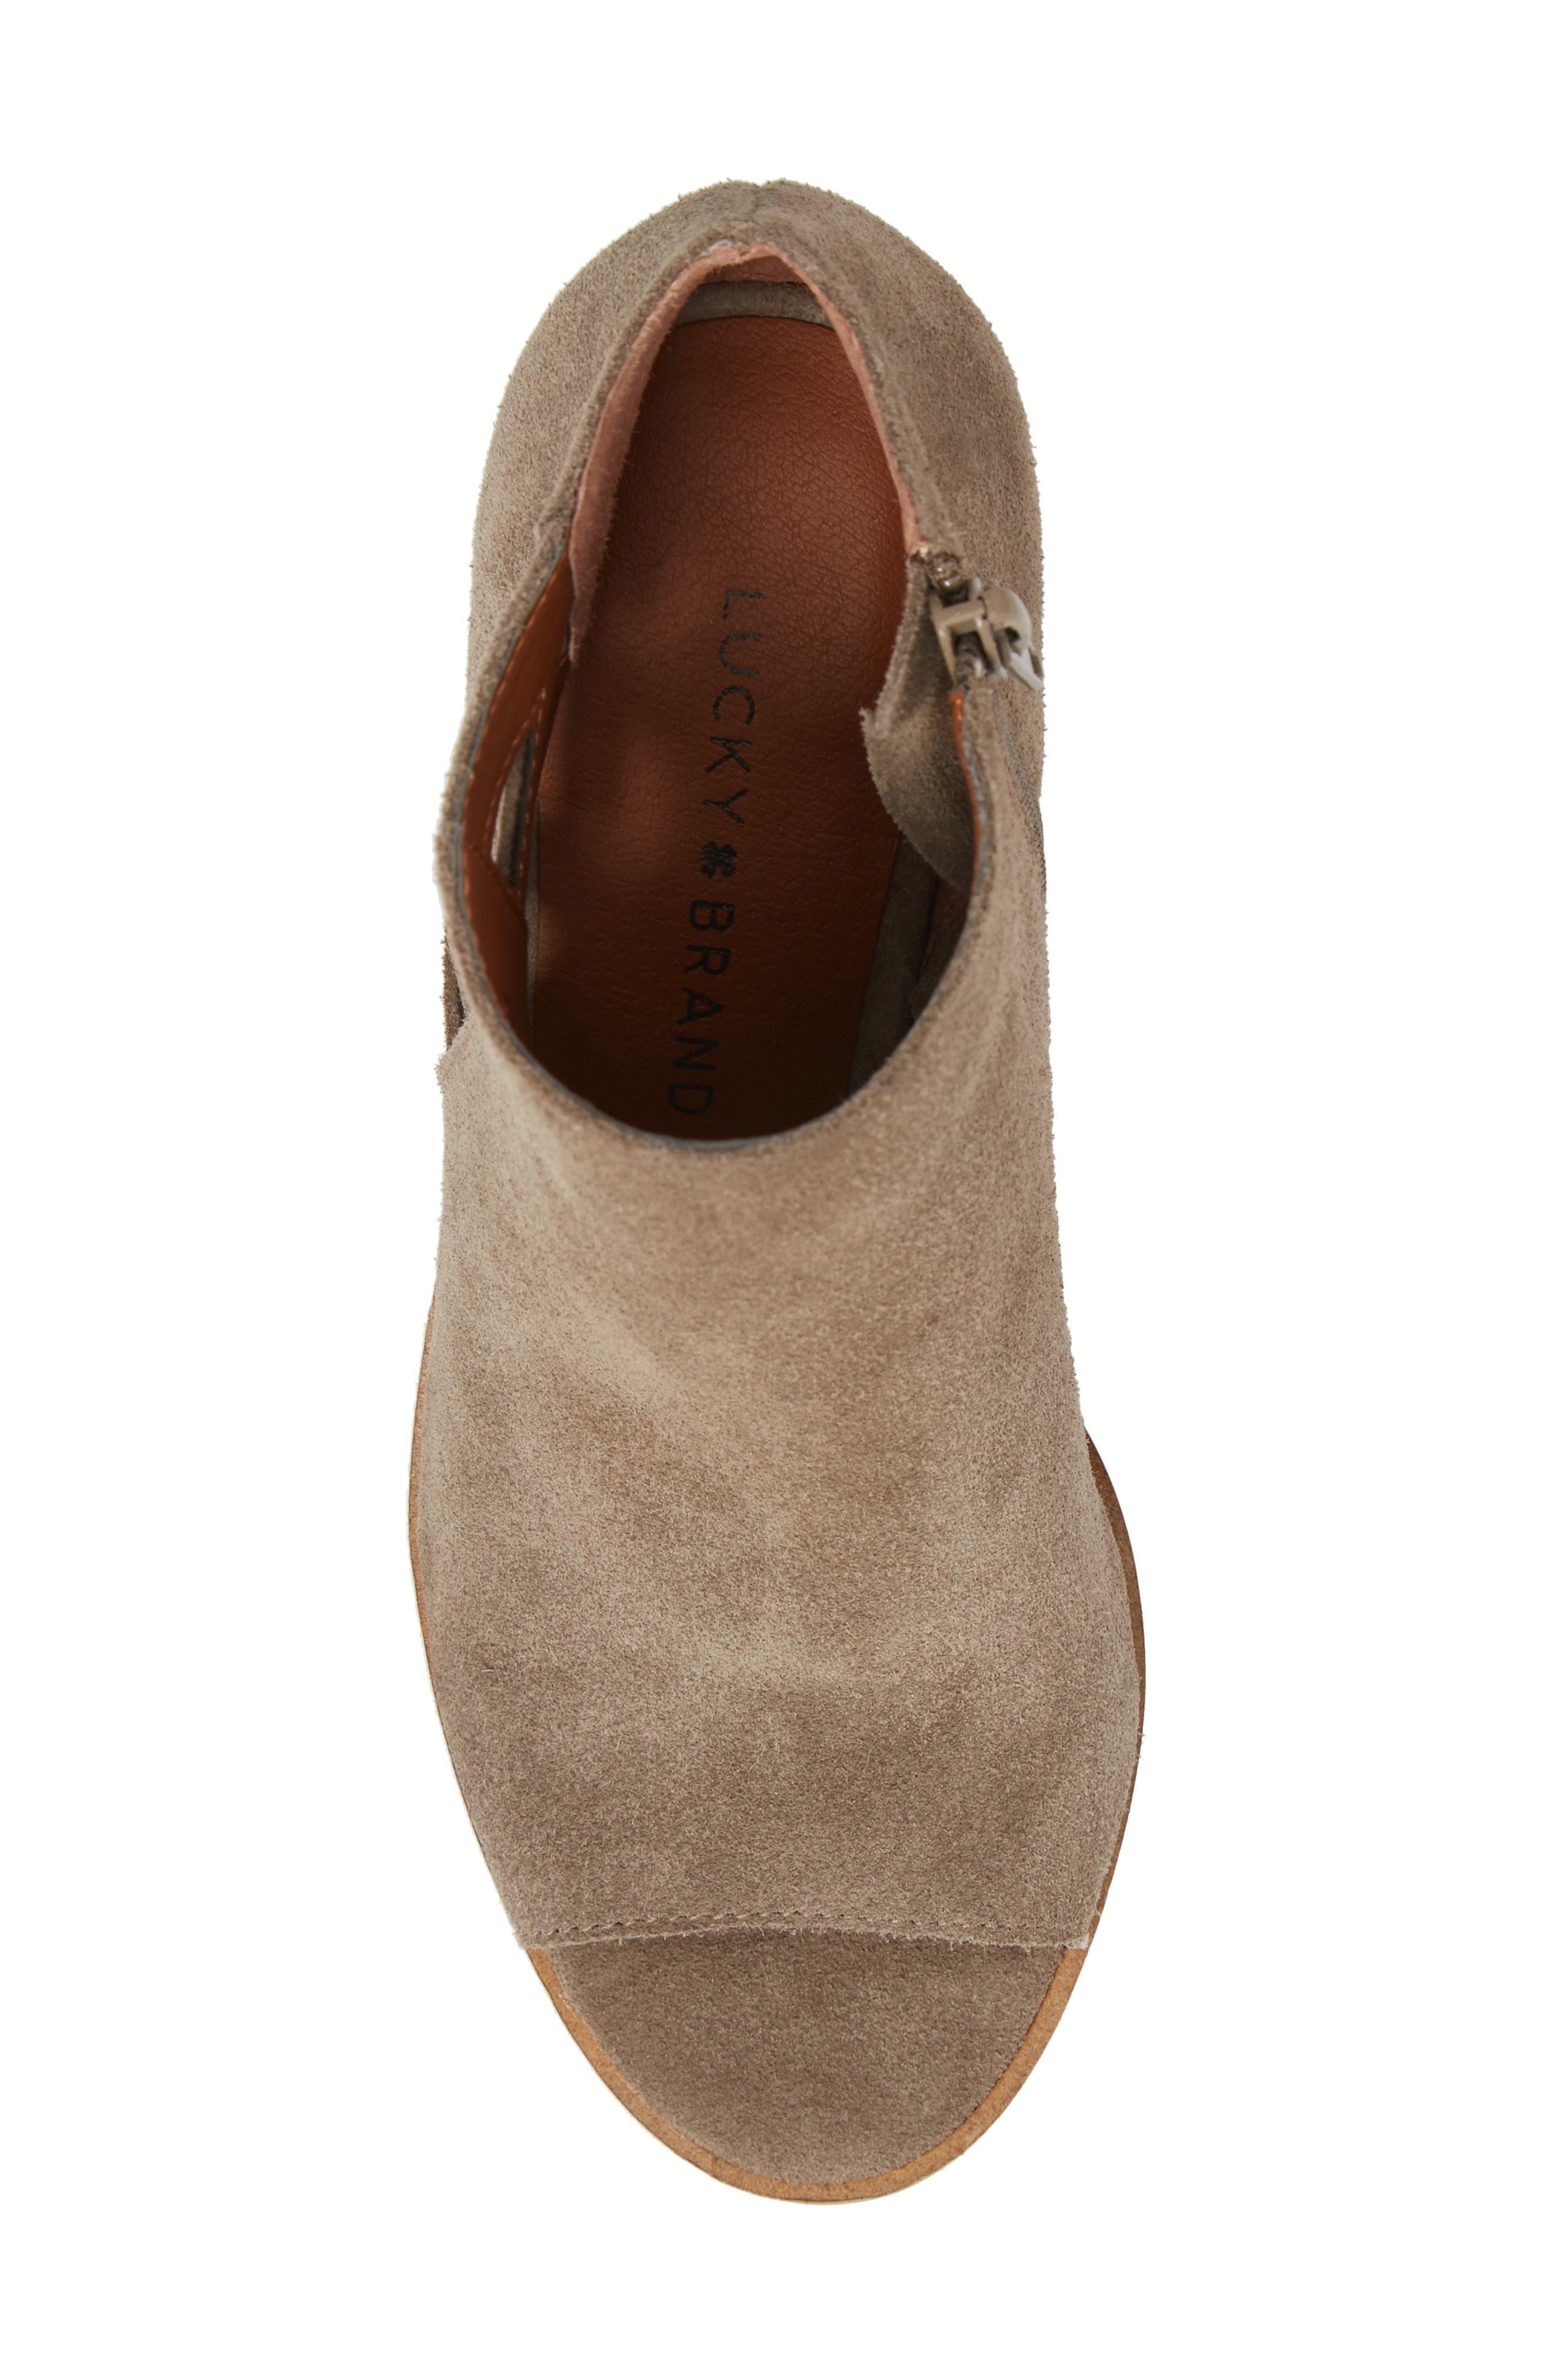 Kantoah Bootie,                             Alternate thumbnail 5, color,                             Brindle Suede